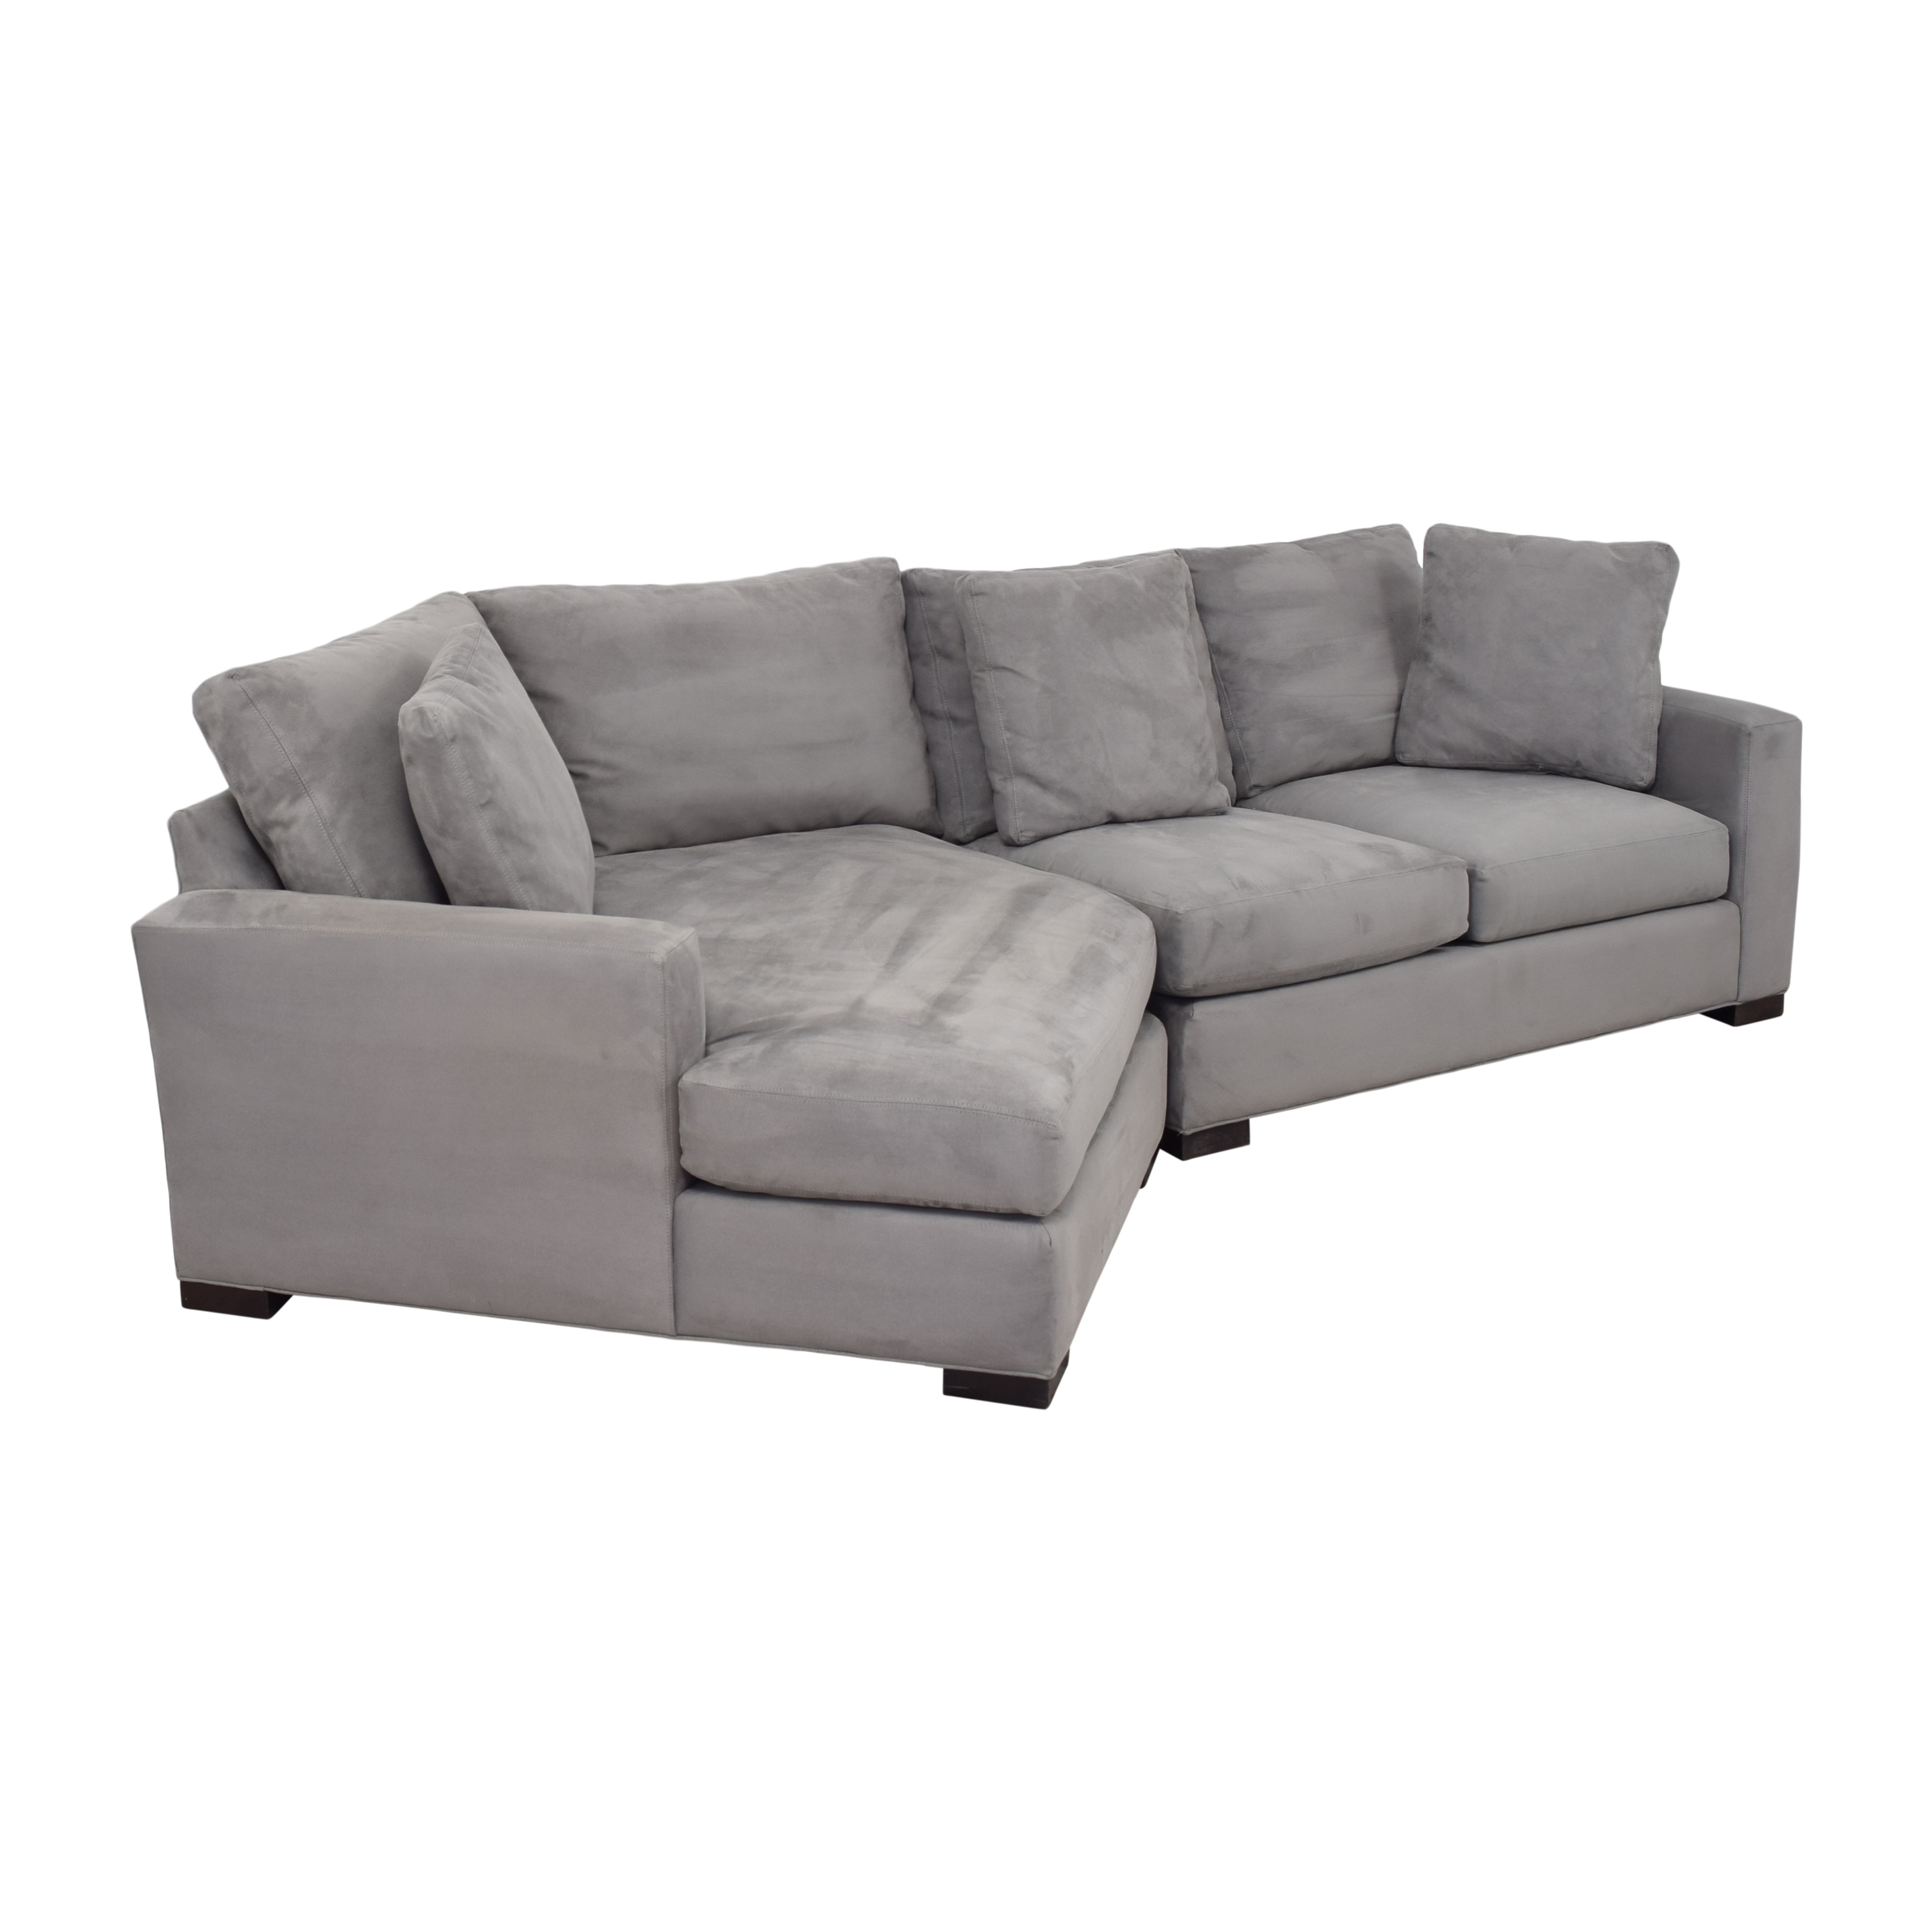 Room & Board Room & Board Metro Sectional with Angled Chaise second hand